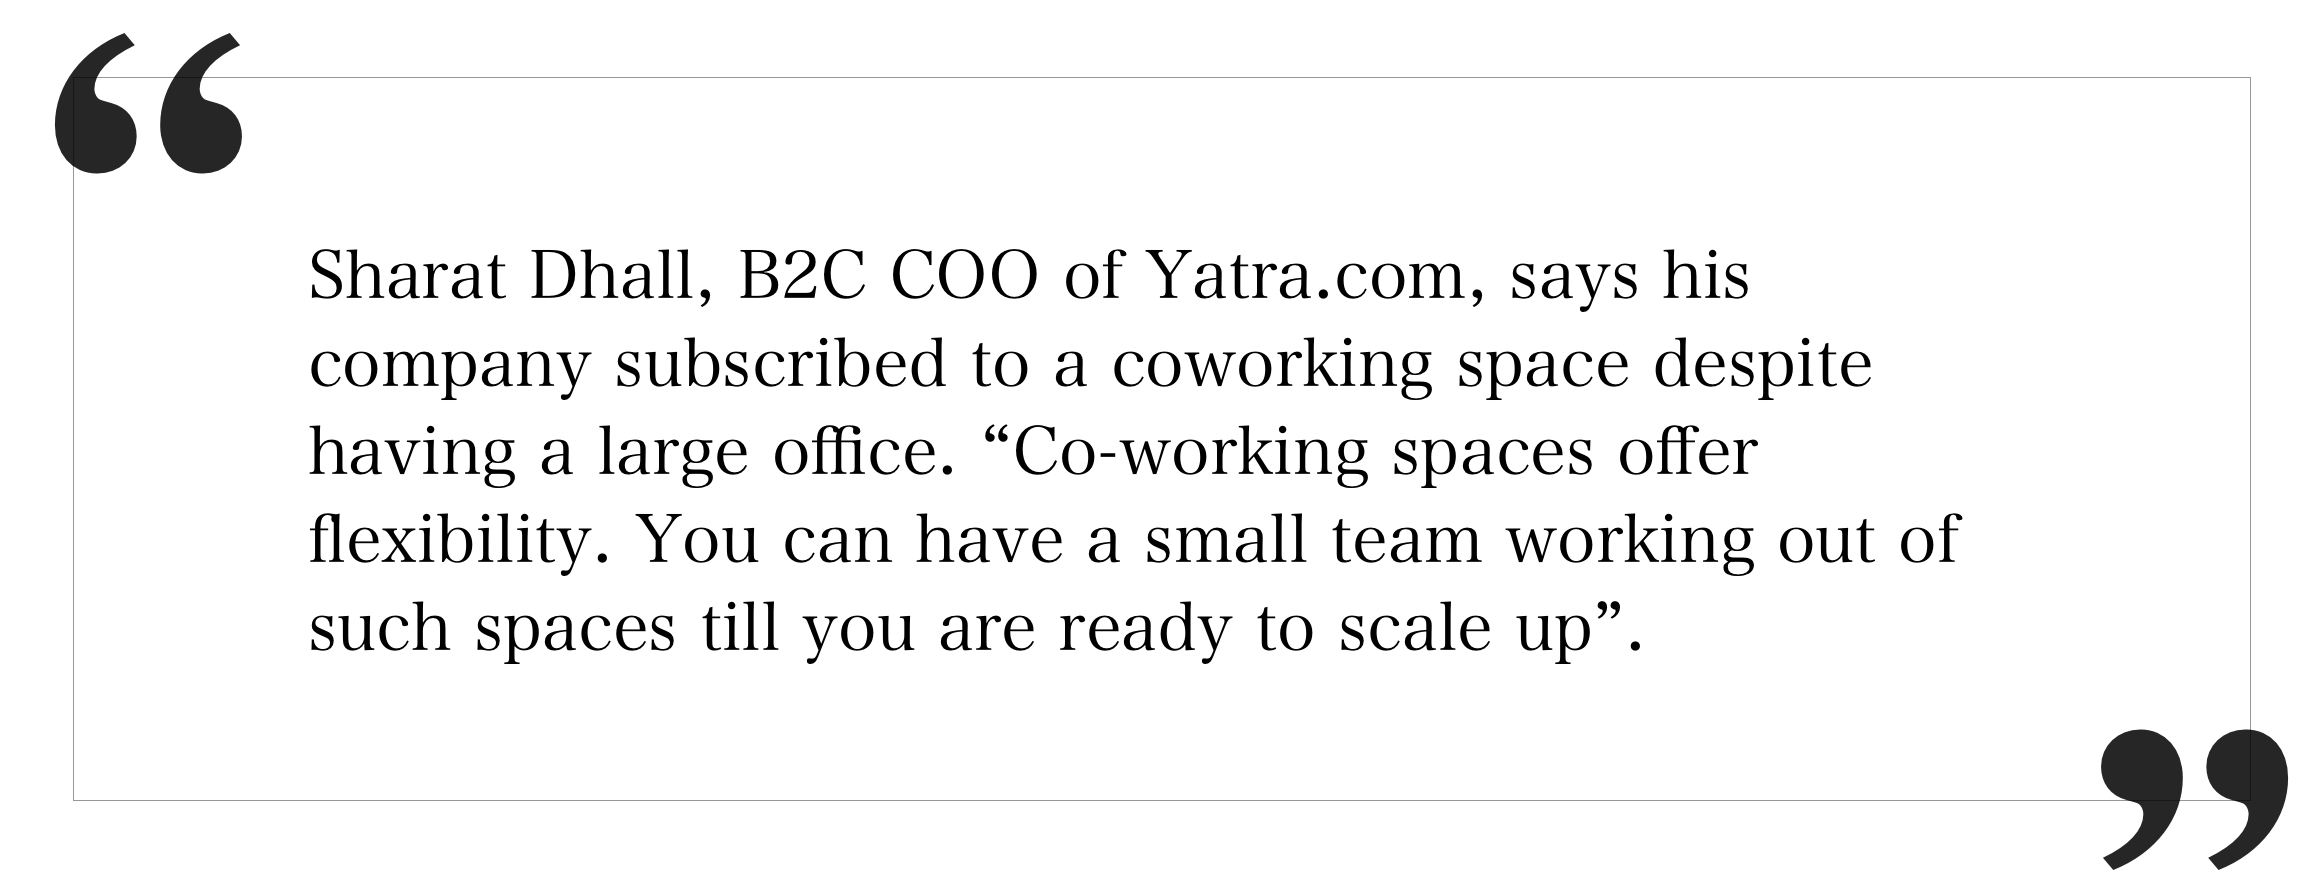 Coworking Space Offer Flexibility